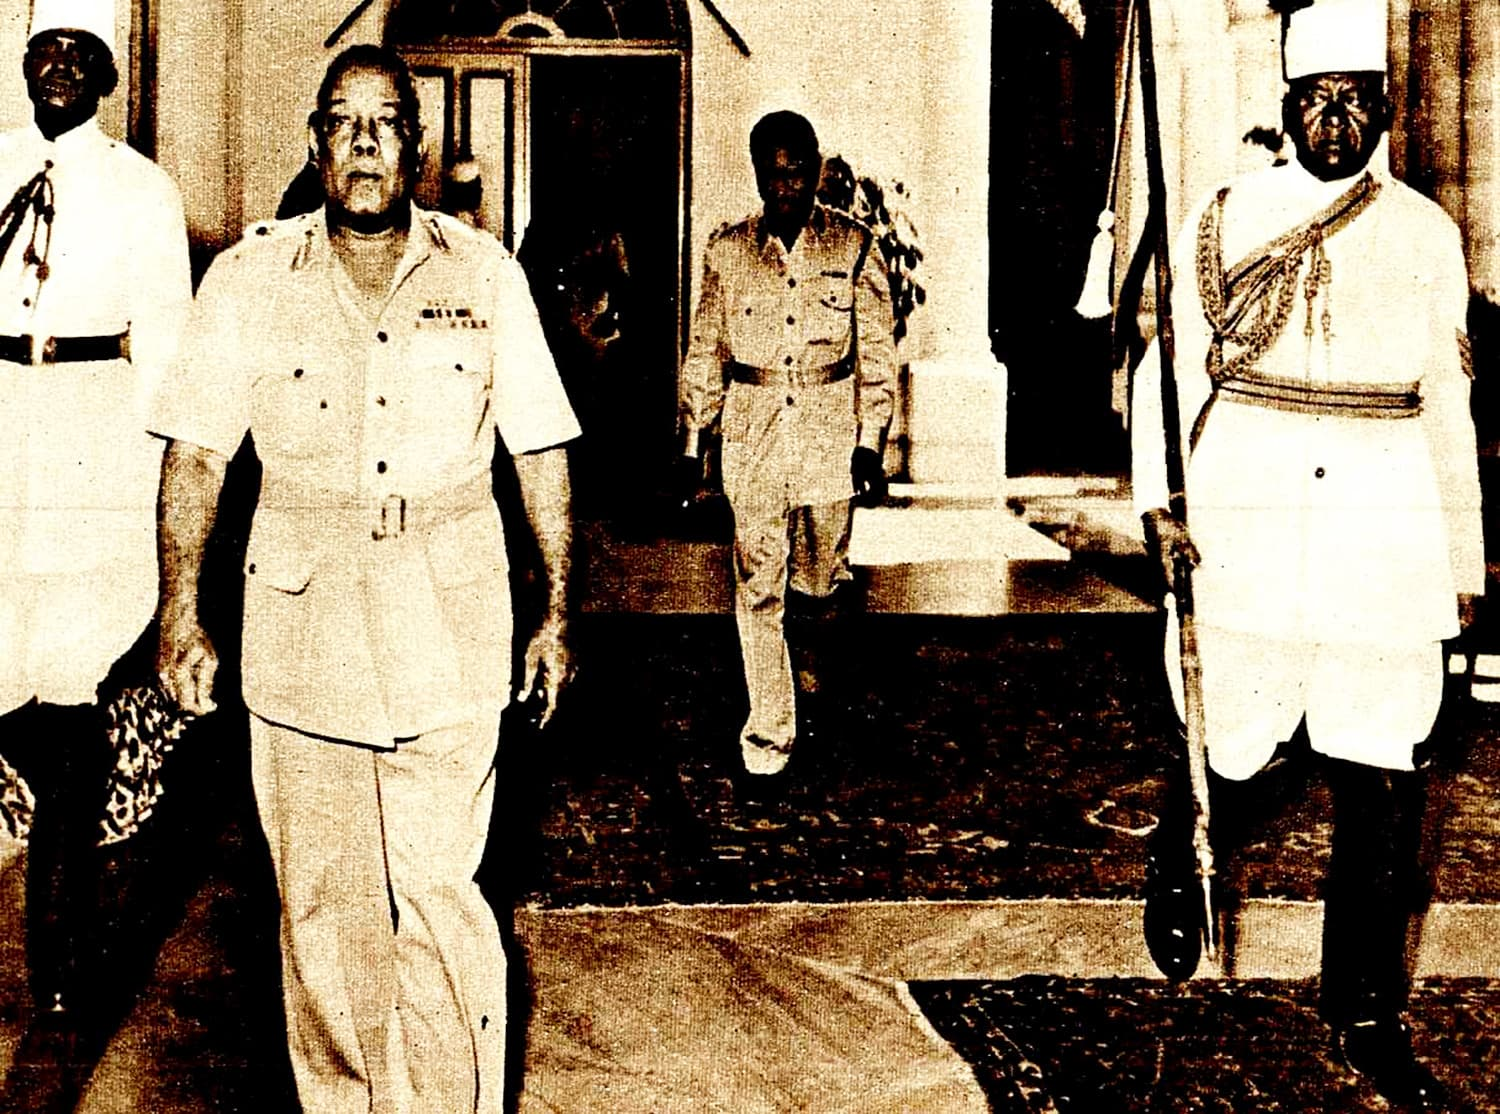 Leader of the 1958 military coup in Sudan, General Abboud. He was a sympathiser of the quasi-Islamic groups, the Ansar and the Khatimiyya.  — Photo: Past Daily.